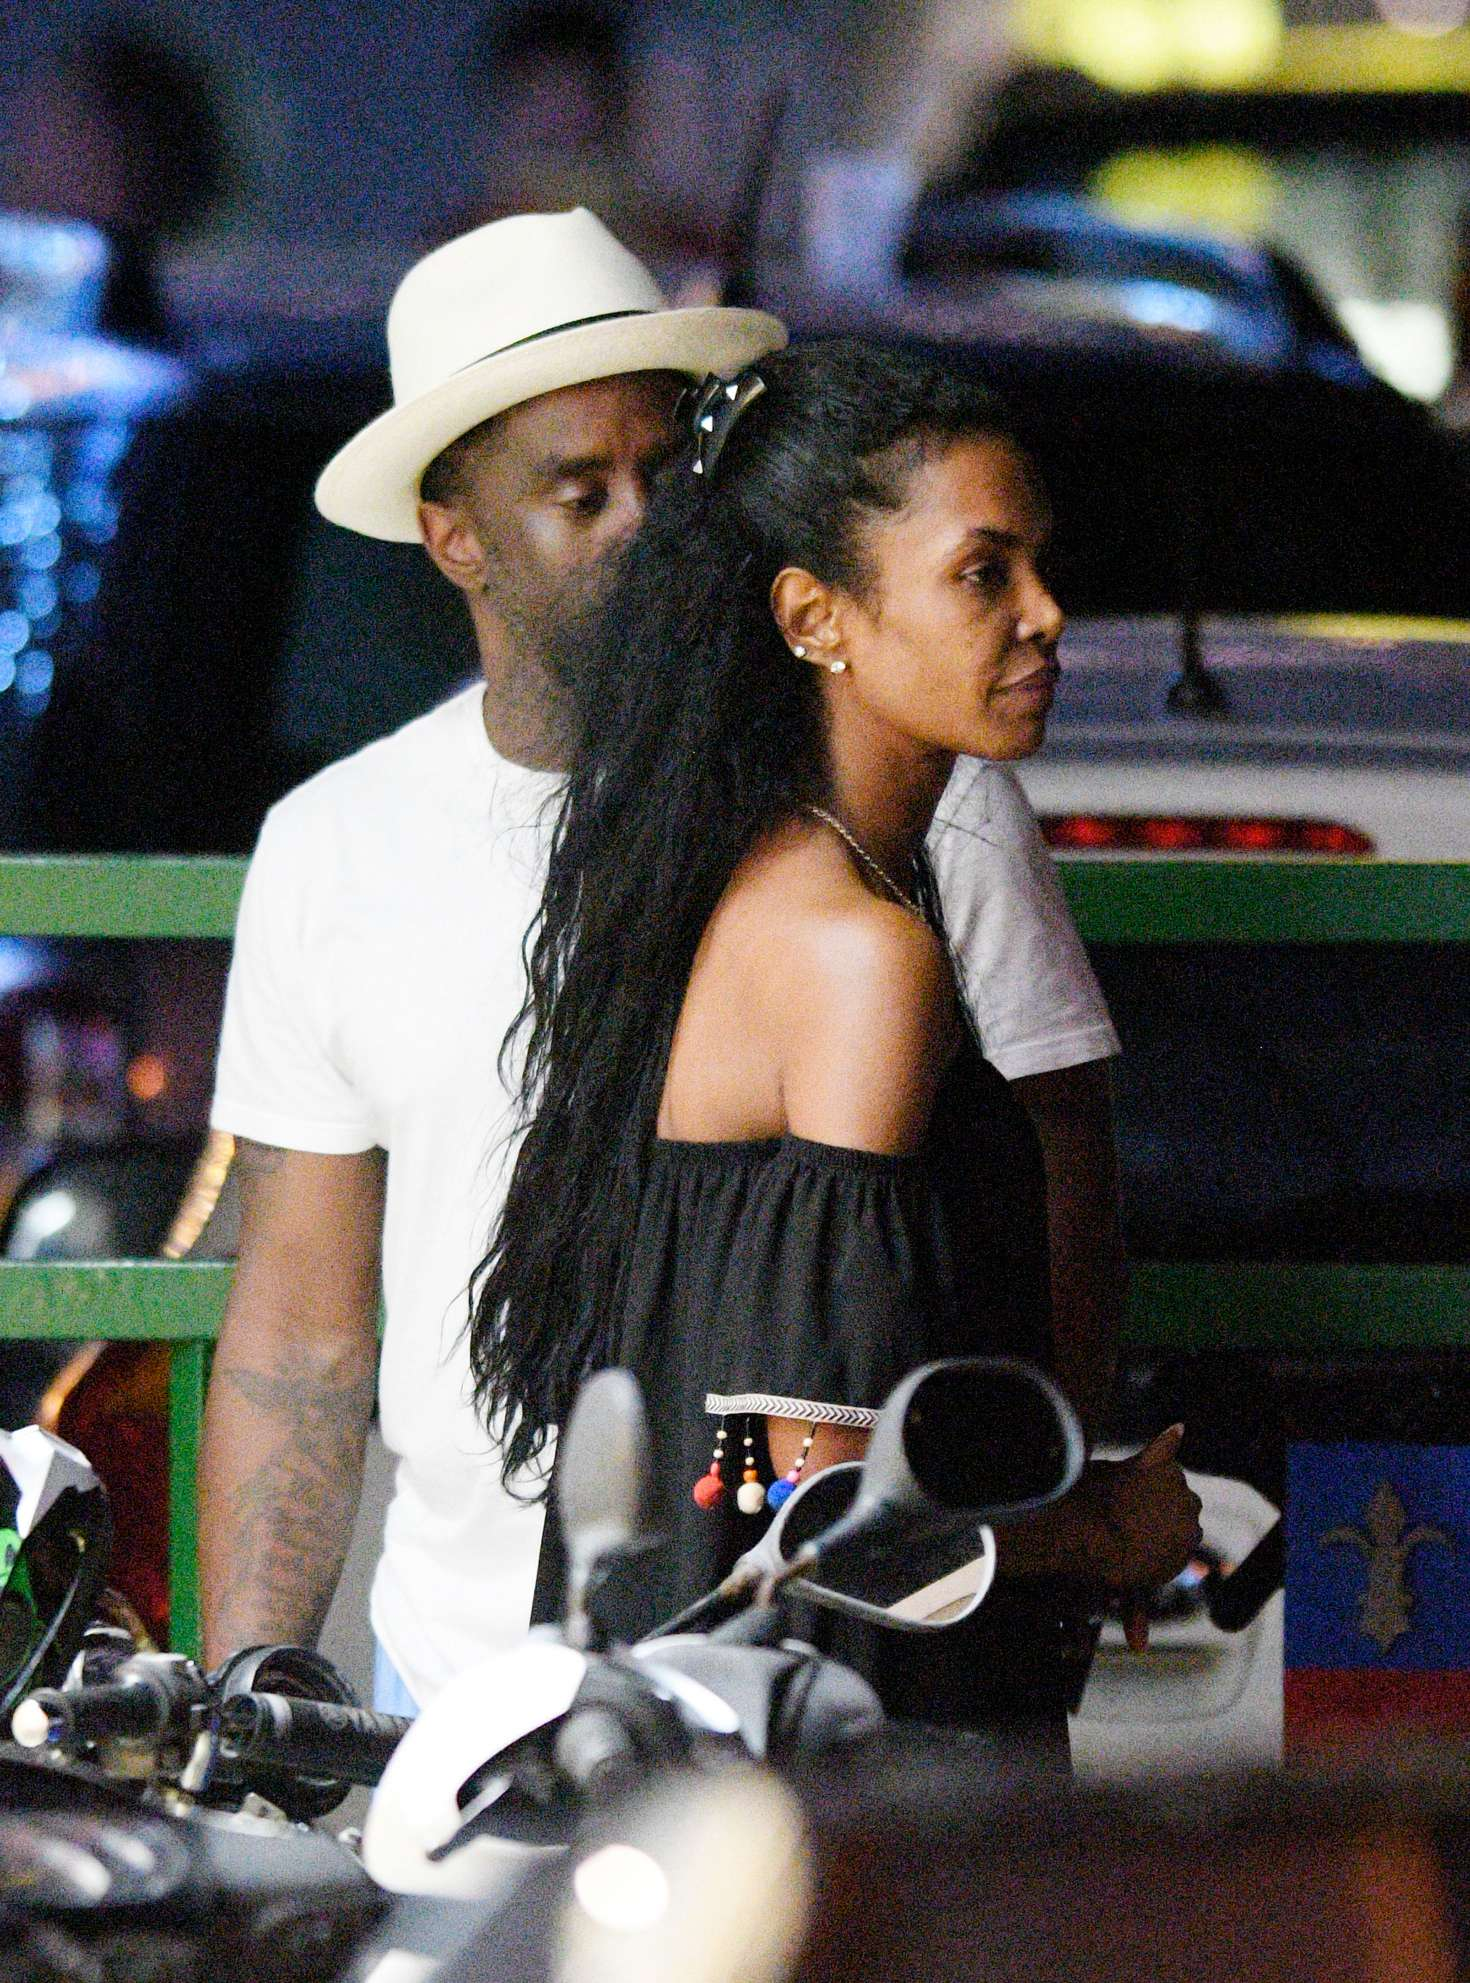 Diddy heads out with girlfriend Cassie   Daily Mail Online